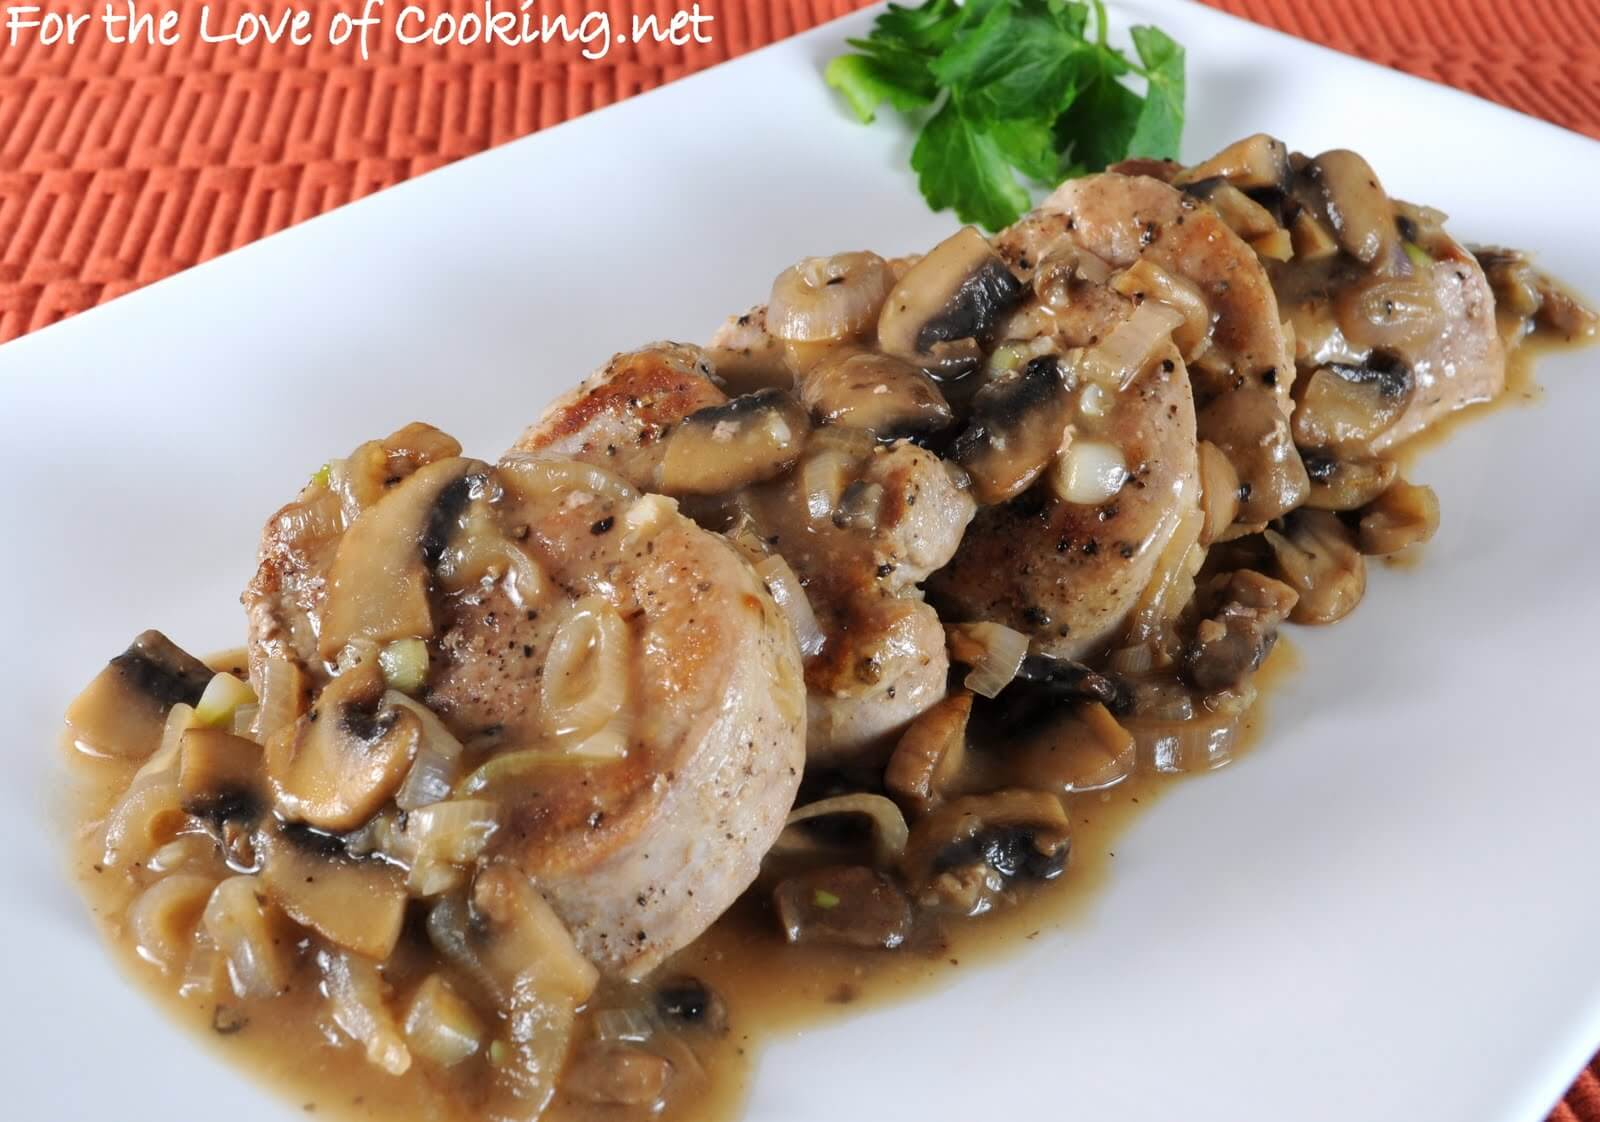 Pork Medallions Smothered in a Mushroom and Shallot Gravy